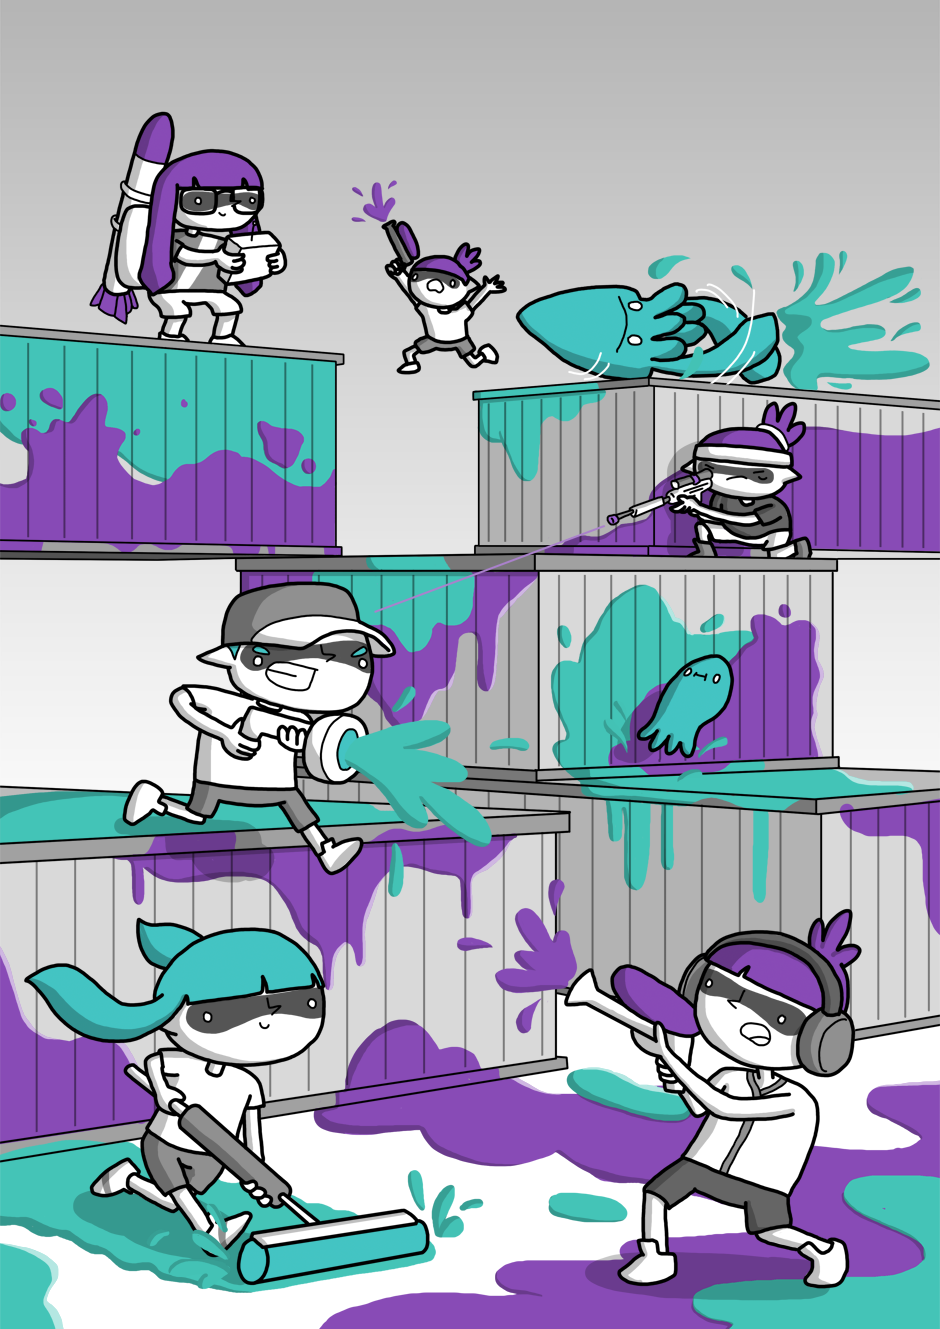 lol the tiny squid  splatoon games for kids anime